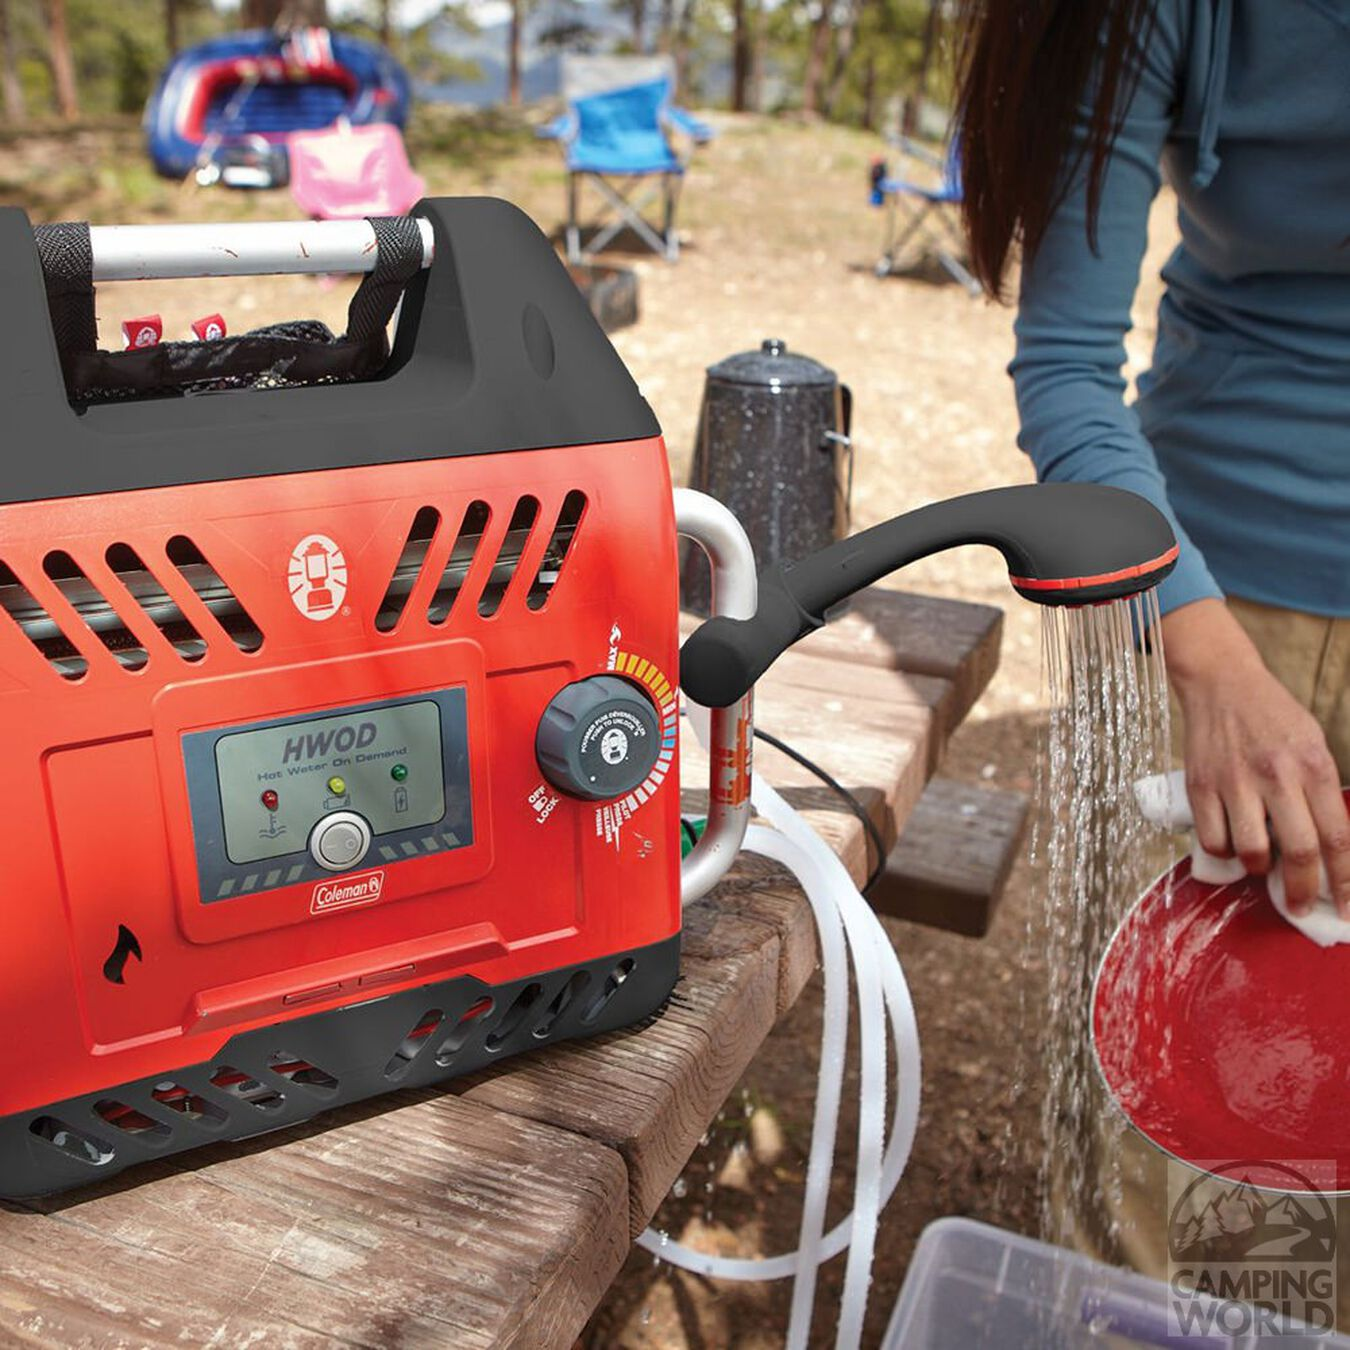 Coleman 2000026562 Portable Water Heater On Demand H2Oasis Outdoor Camping New